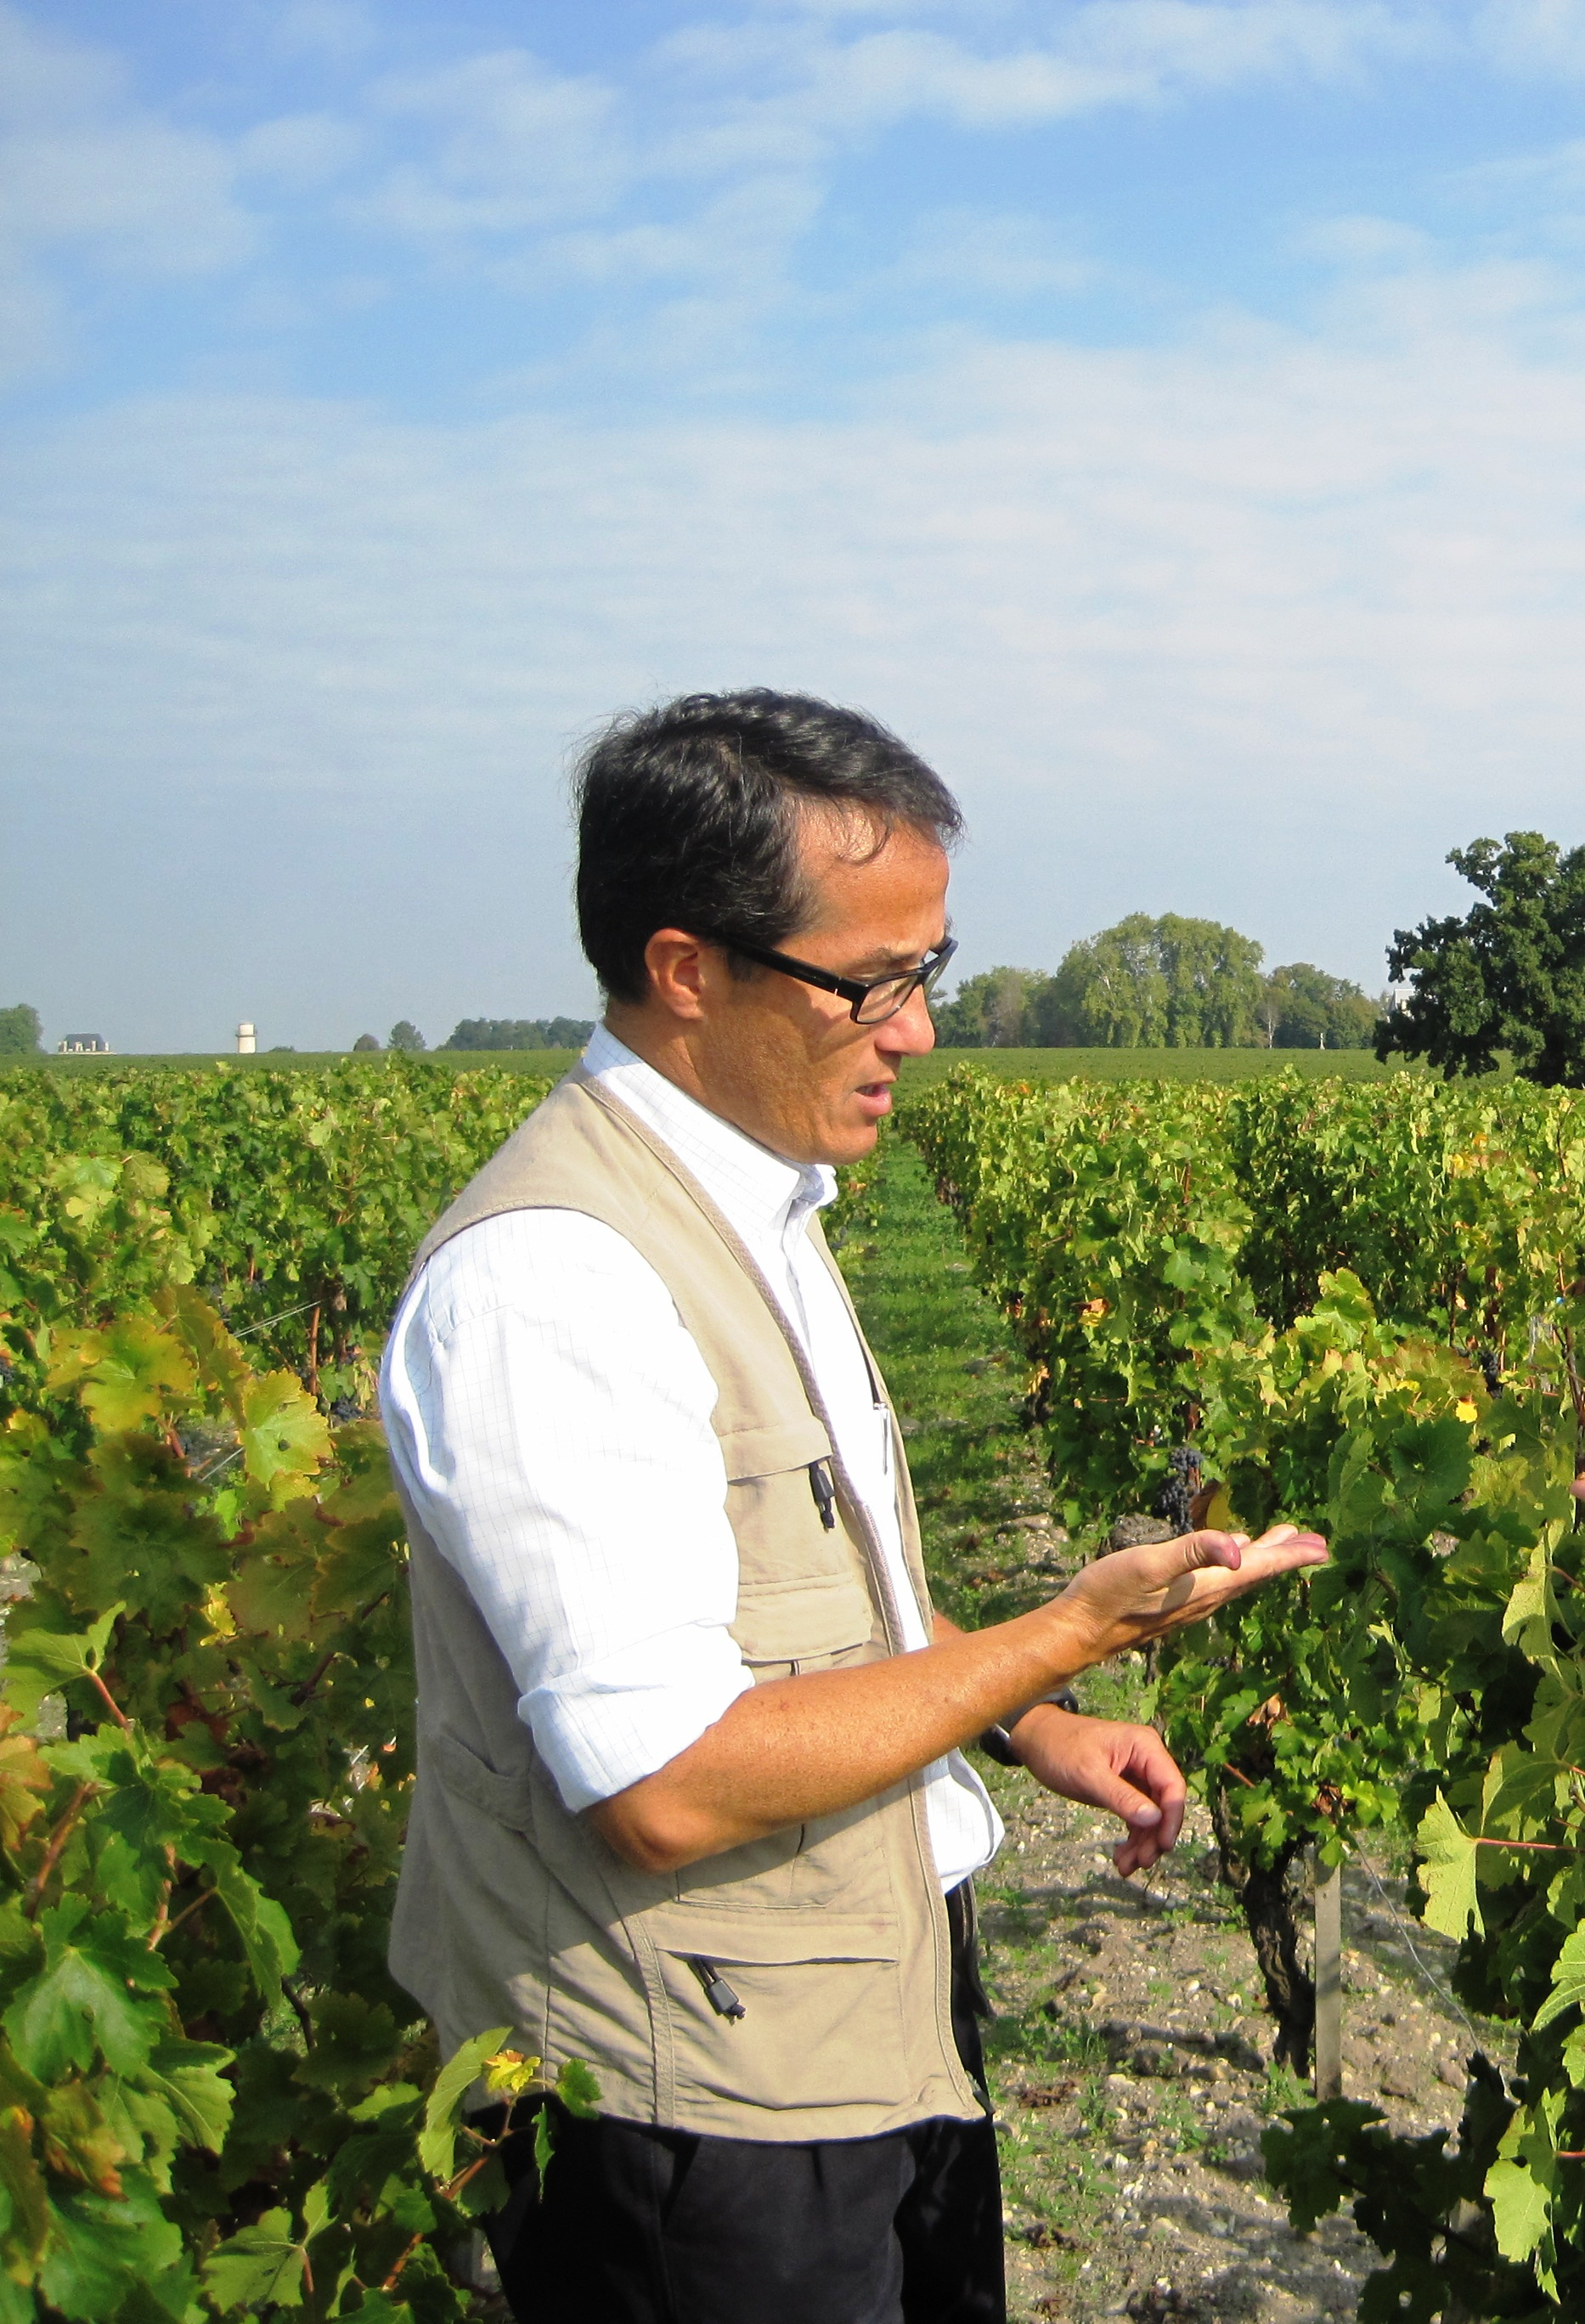 2010 Pichon Lalande Harvest, Thomas Do Chi Nam Optimistic!